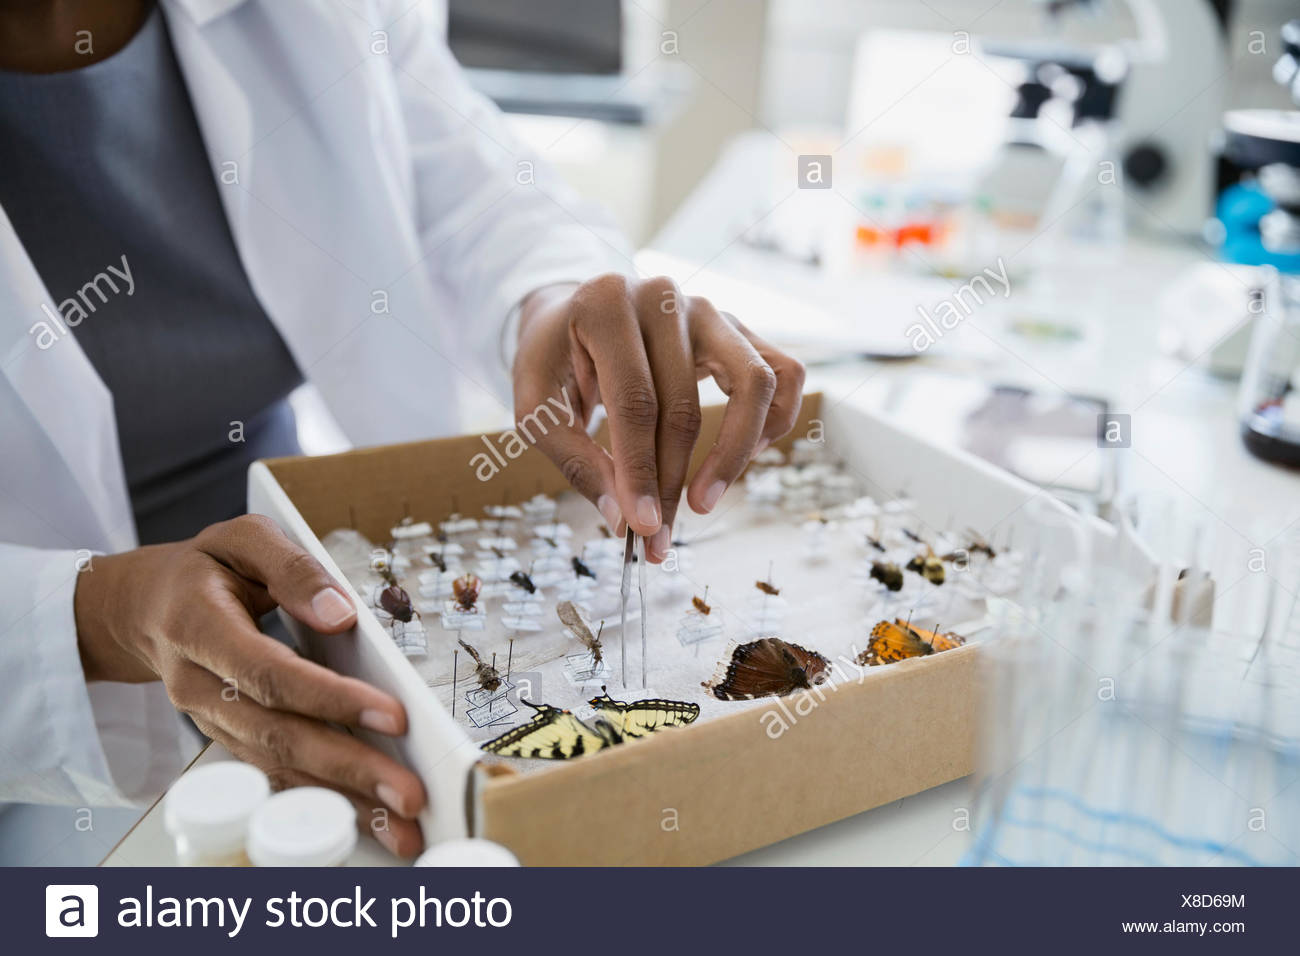 Scientist removing butterfly specimens from box with tweezers - Stock Image